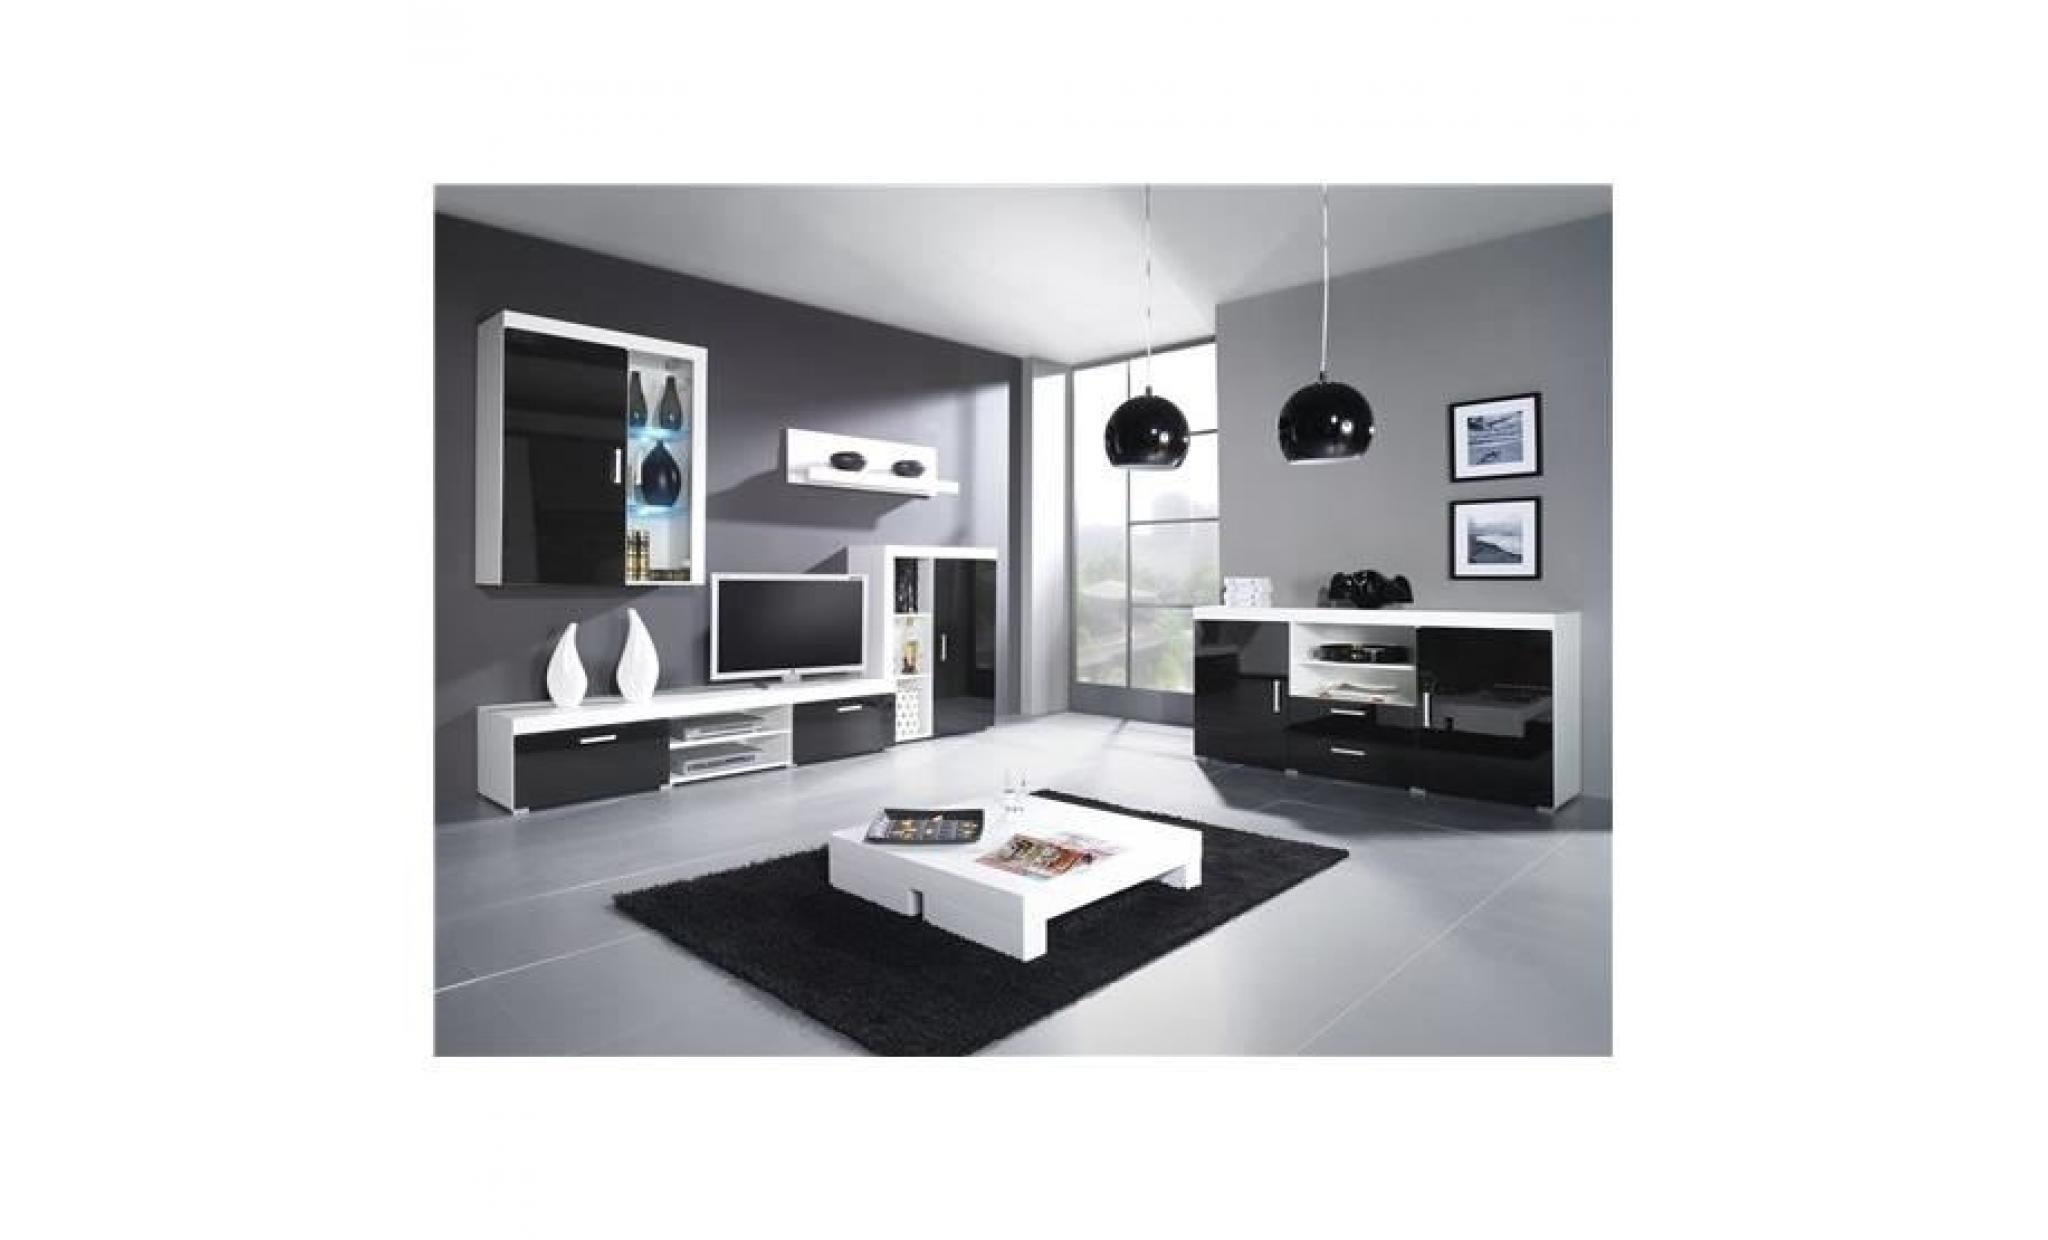 achat meuble design pas cher. Black Bedroom Furniture Sets. Home Design Ideas